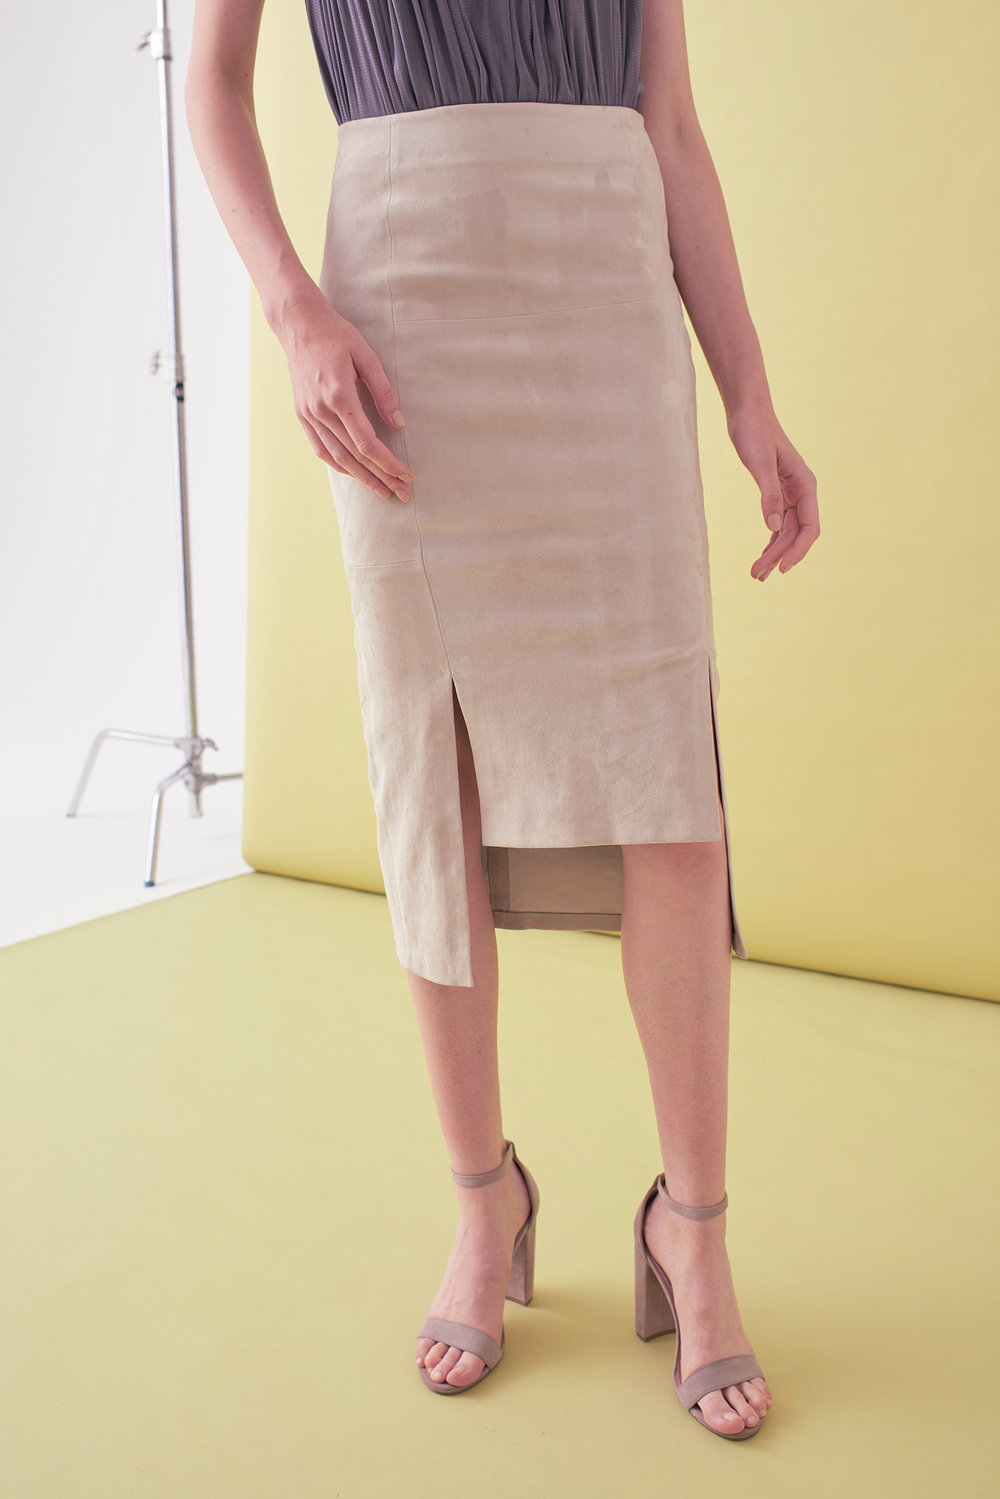 Sarah_Swann_SS17_33_Stretch_Suede_Step_Front_Skirt_Bone_F.jpg